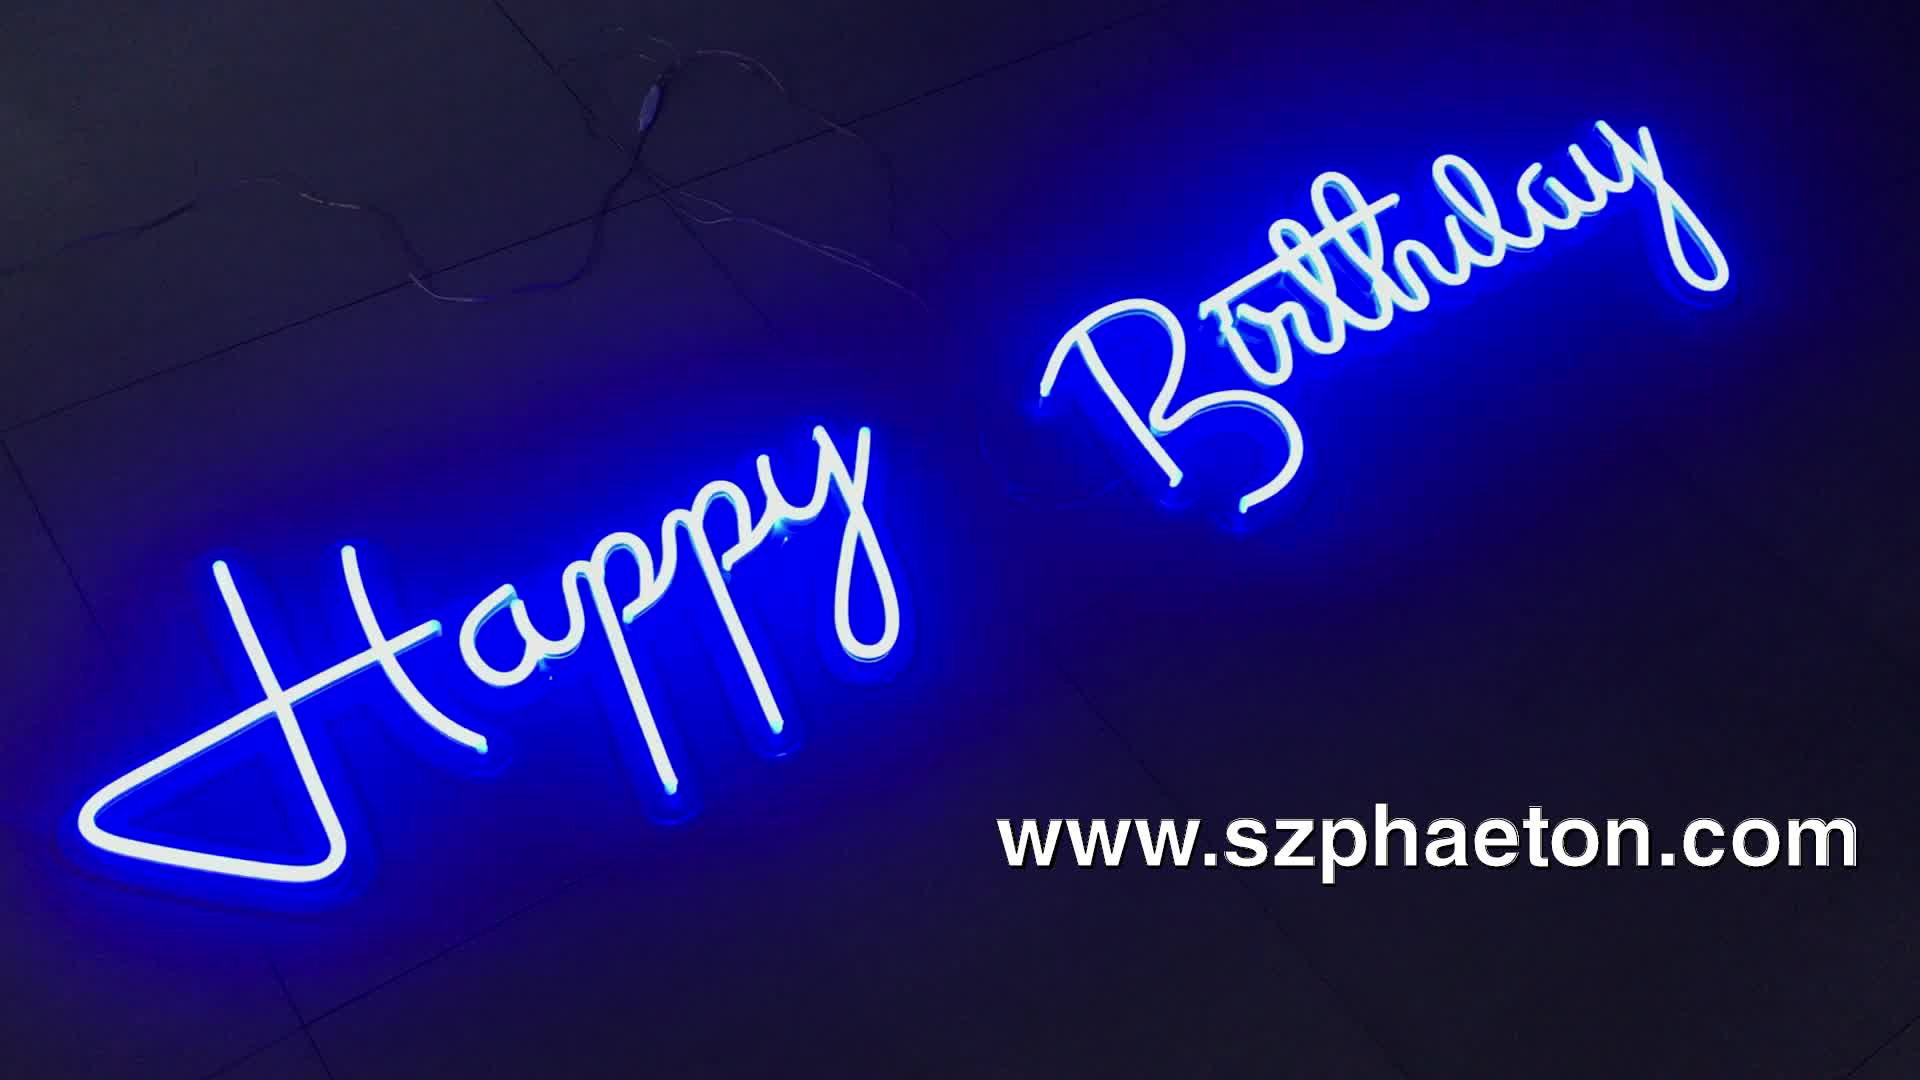 Wedding decorative neon sign color change, wall hanging colorful acrylic logo neon sign for events & party